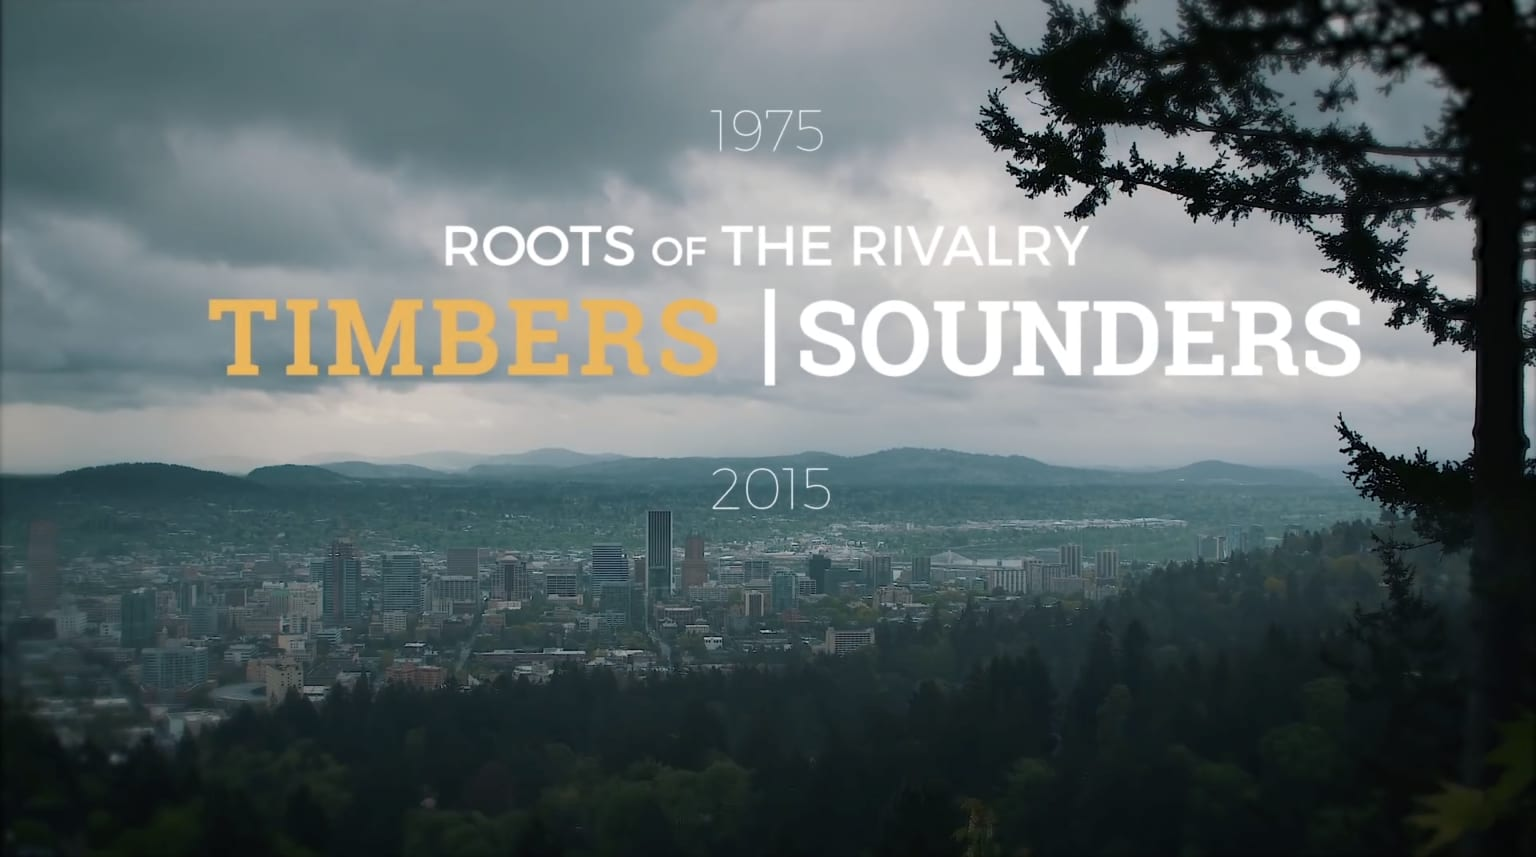 Roots of the Rivalry | Timbers vs. Sounders